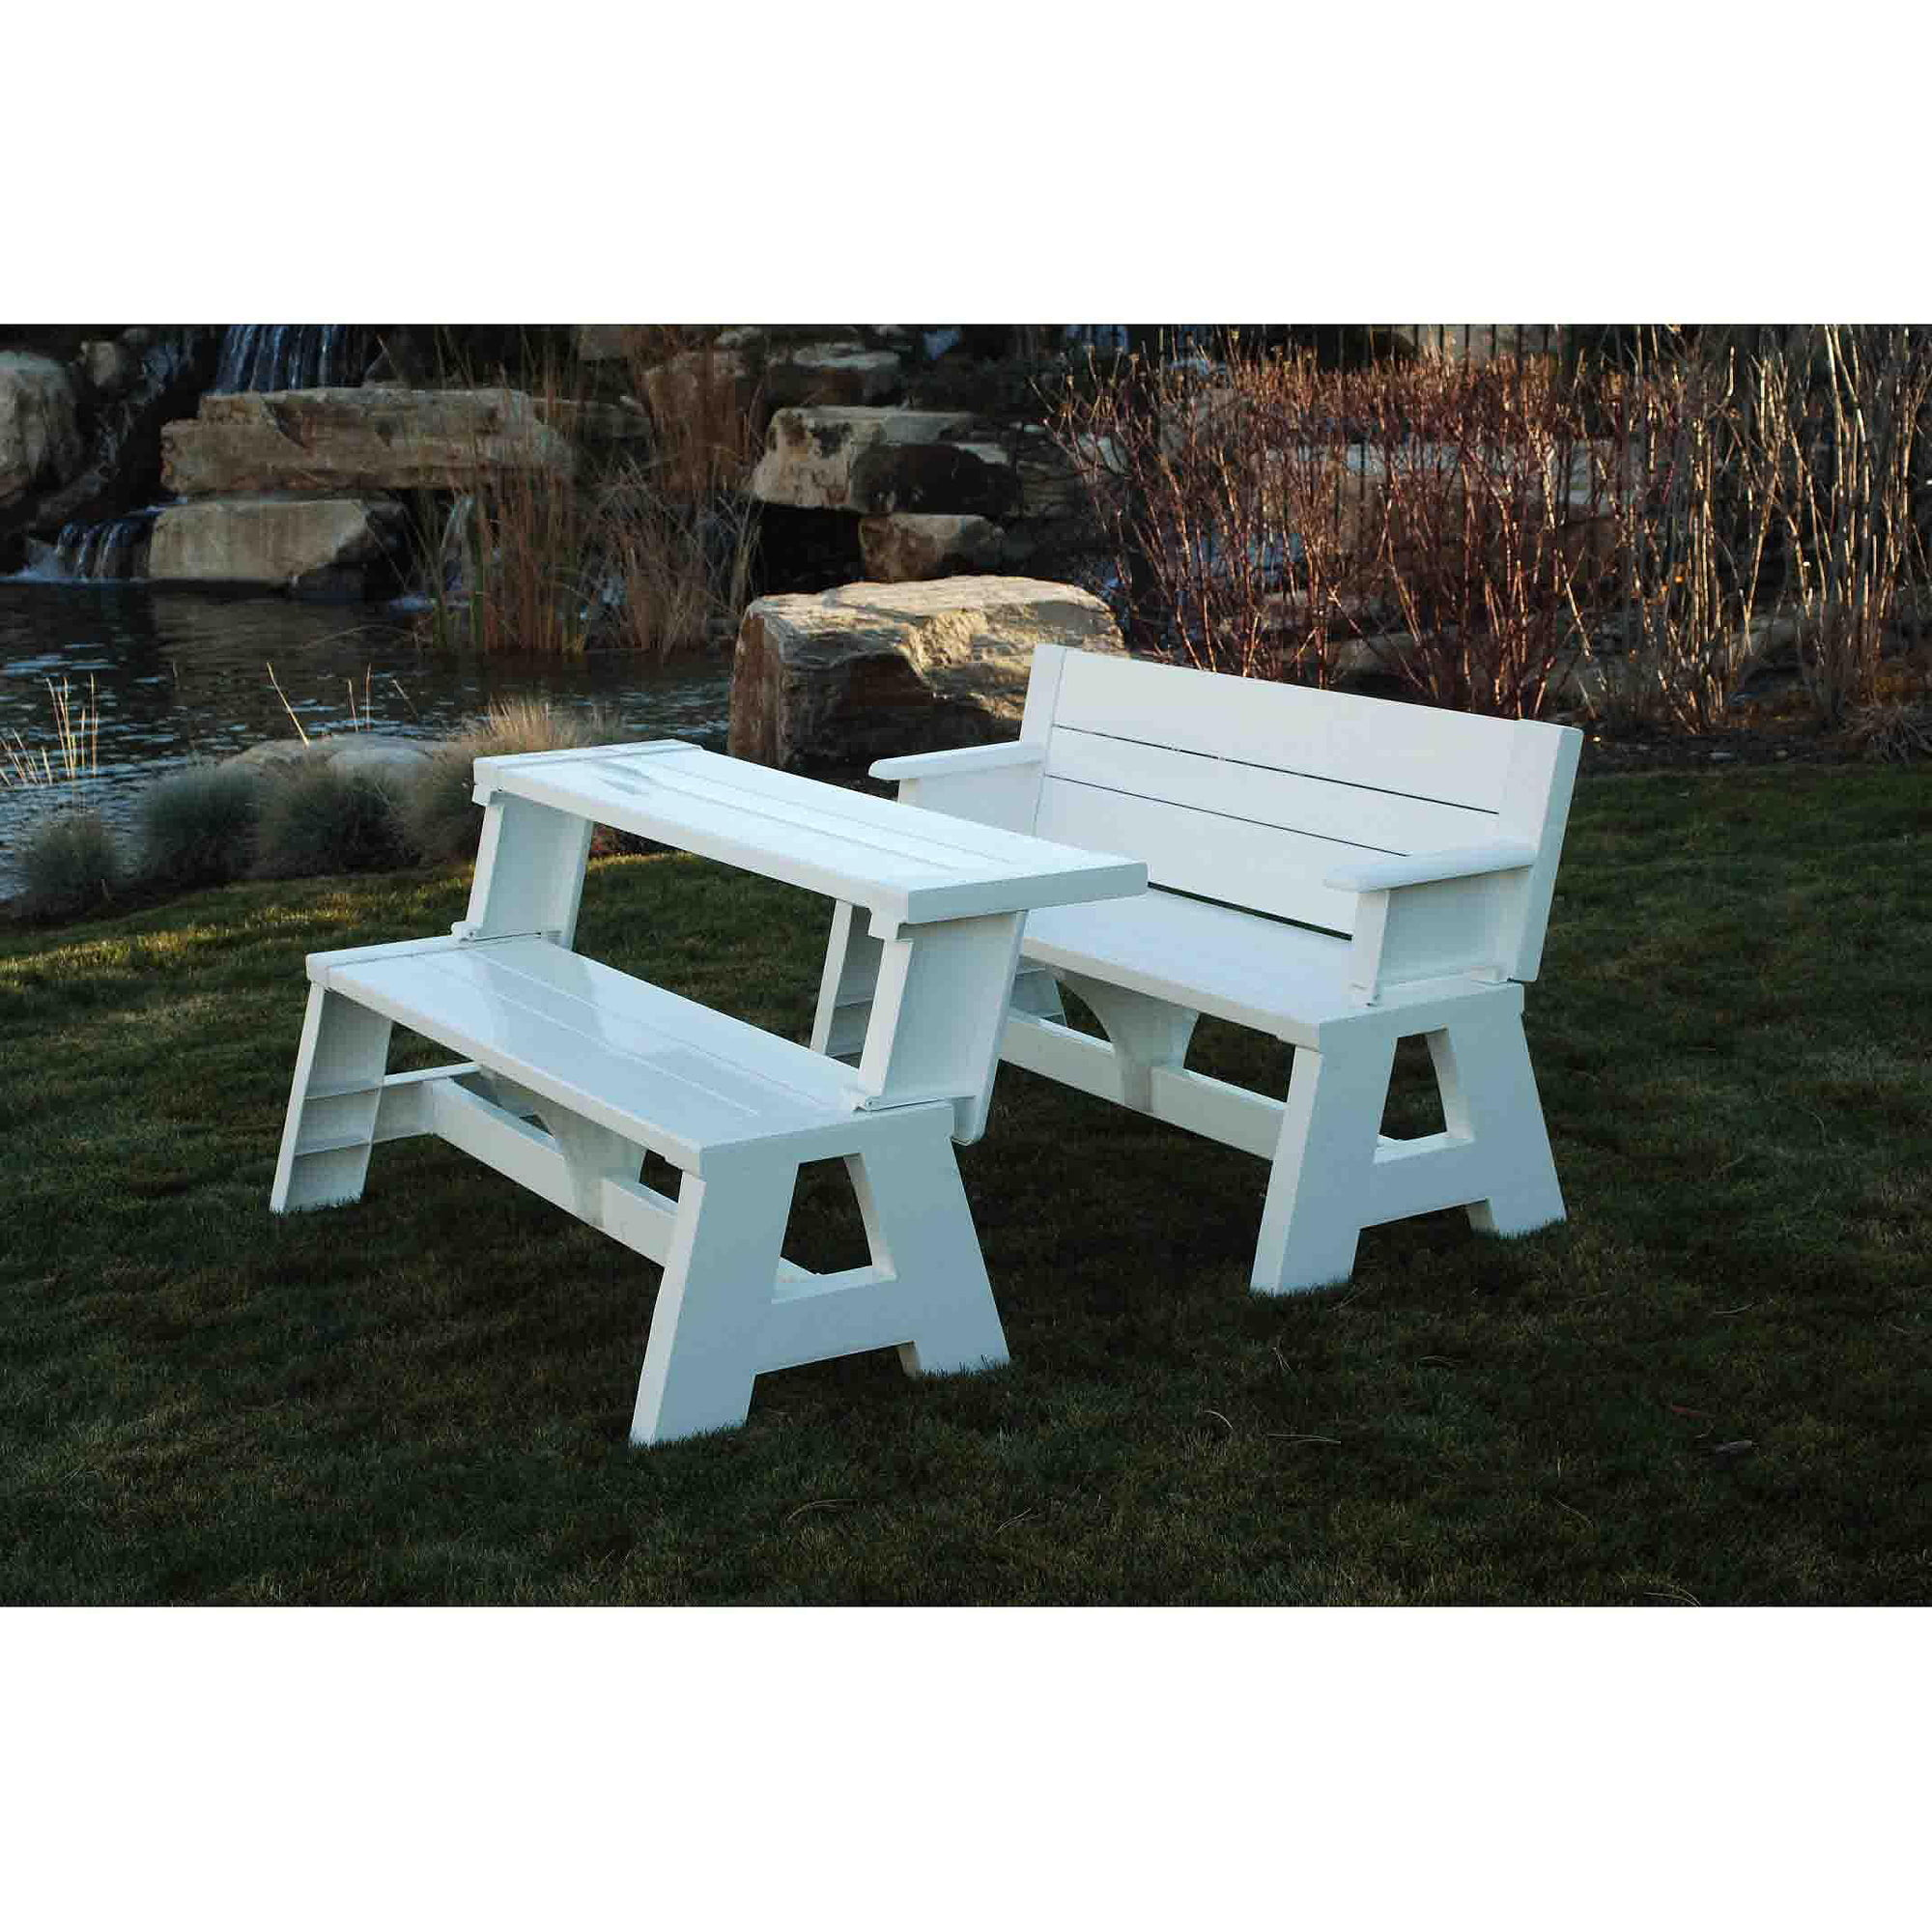 Awe Inspiring Convert A Bench Outdoor Bench And Picnic Table Walmart Com Evergreenethics Interior Chair Design Evergreenethicsorg